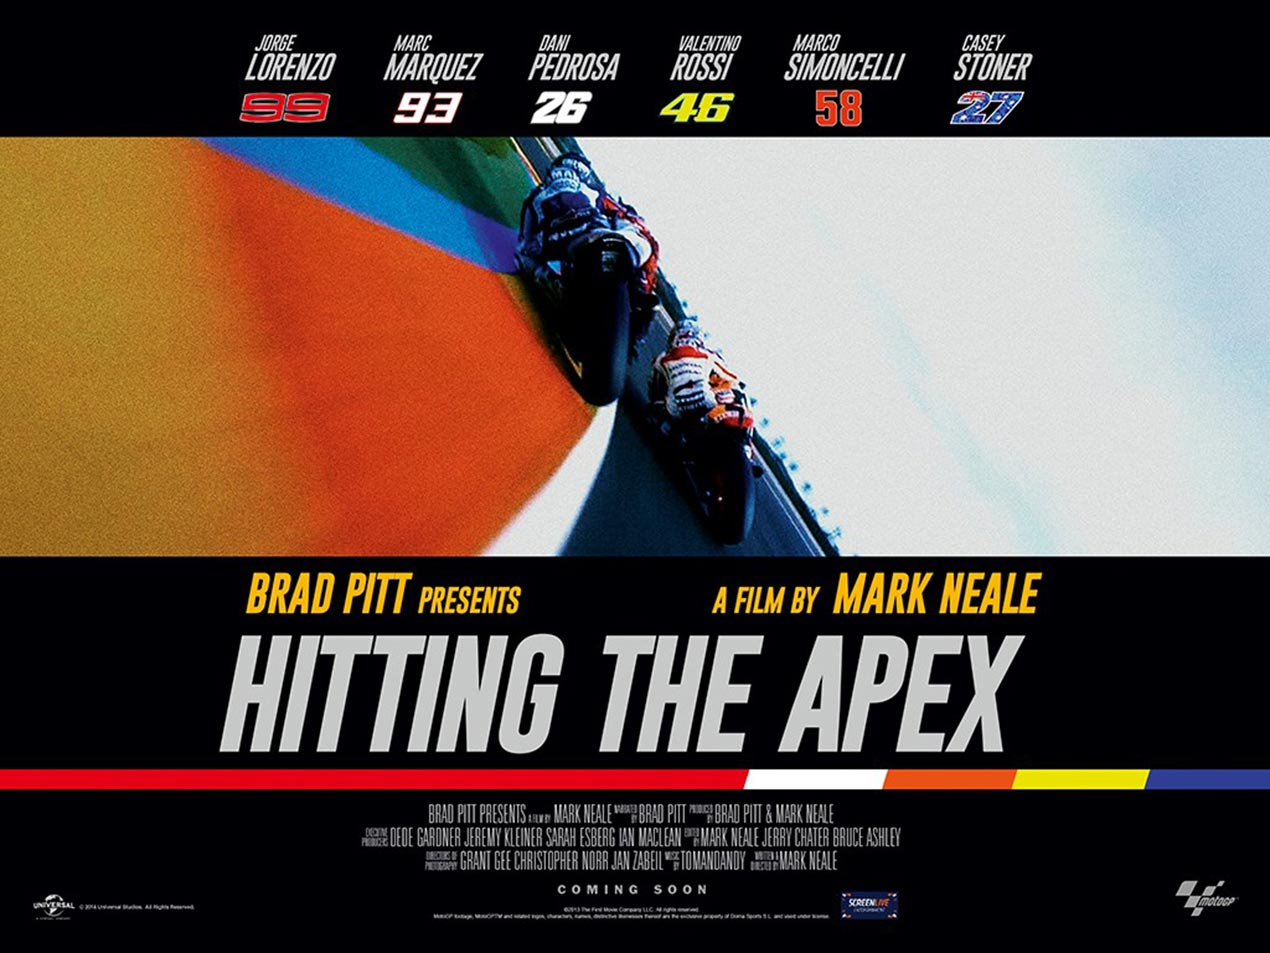 Hitting the Apex - Mark Neale's New Movie About MotoGP - Asphalt & Rubber